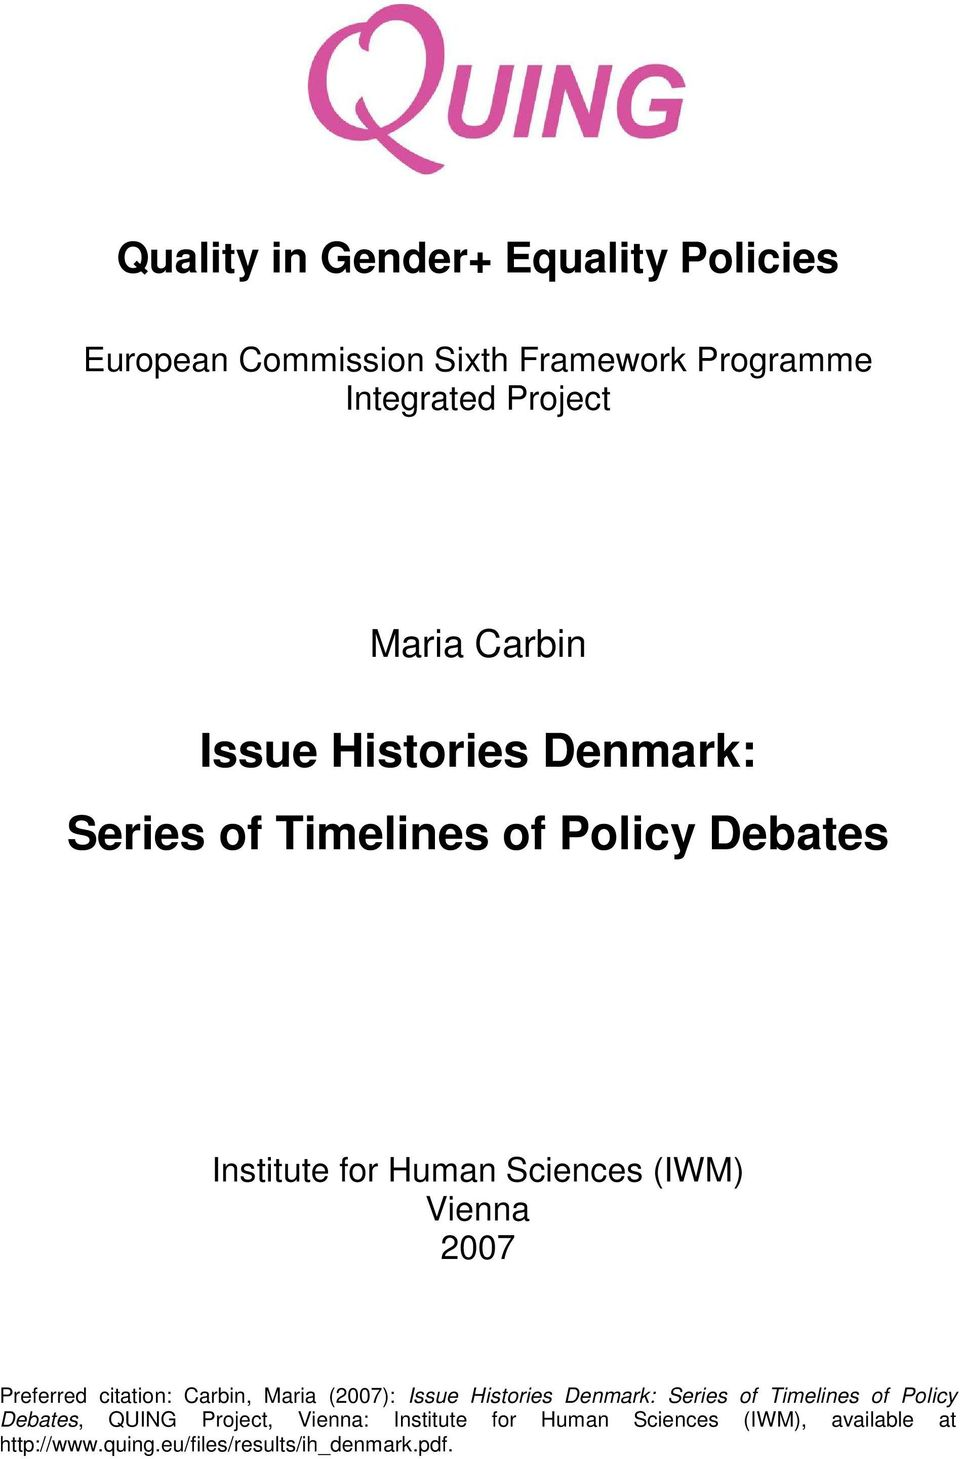 2007 Preferred citation: Carbin, Maria (2007): Issue Histories Denmark: Series of Timelines of Policy Debates,